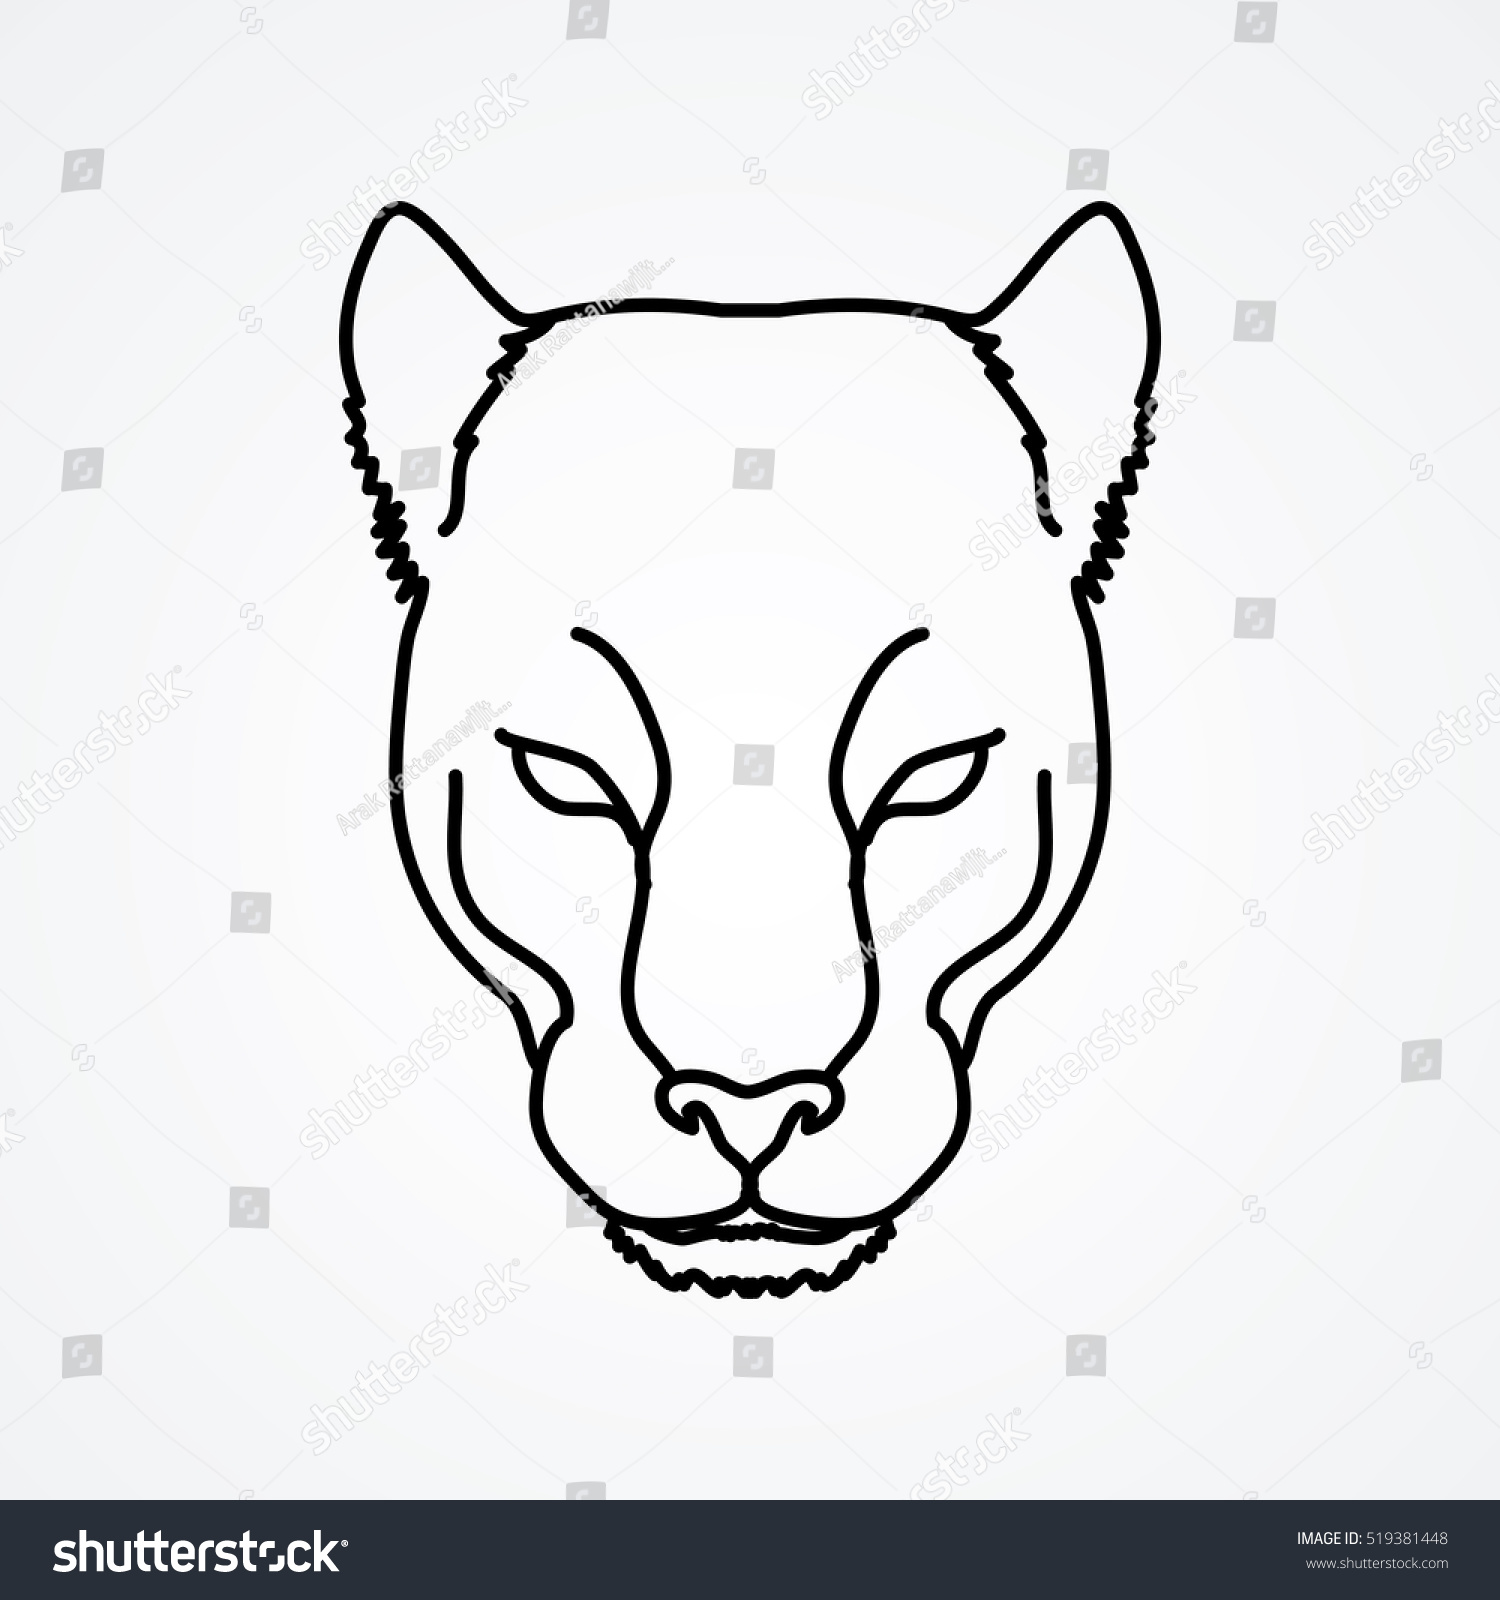 panther drawing outline - photo #26